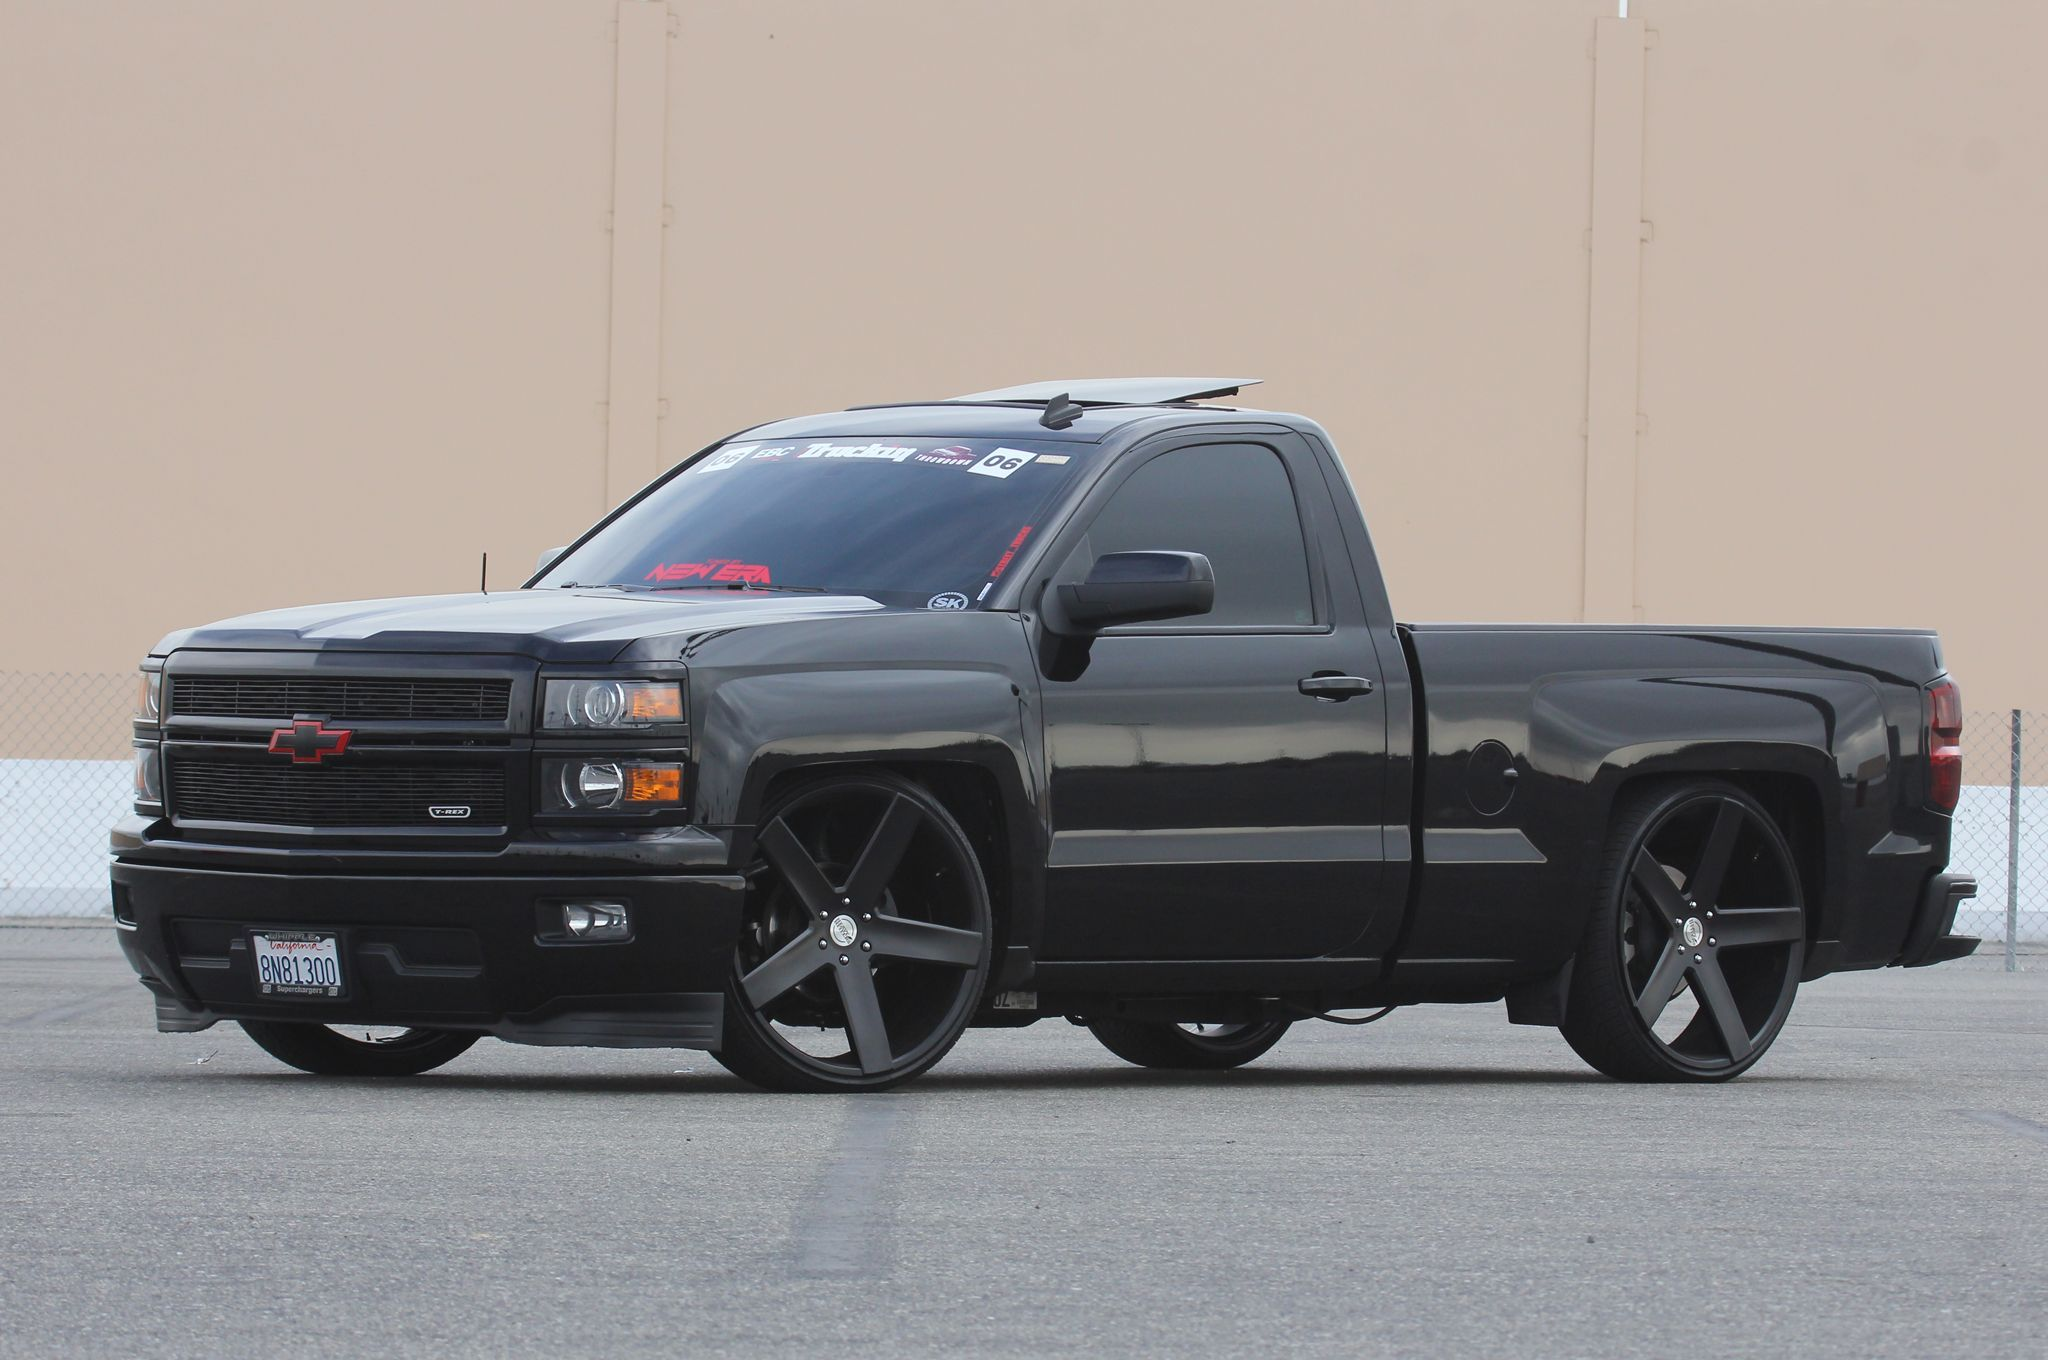 Pin By Bigg Mike On Truckss Are For Girls Chevy Silverado Chevrolet Silverado Chevy Trucks